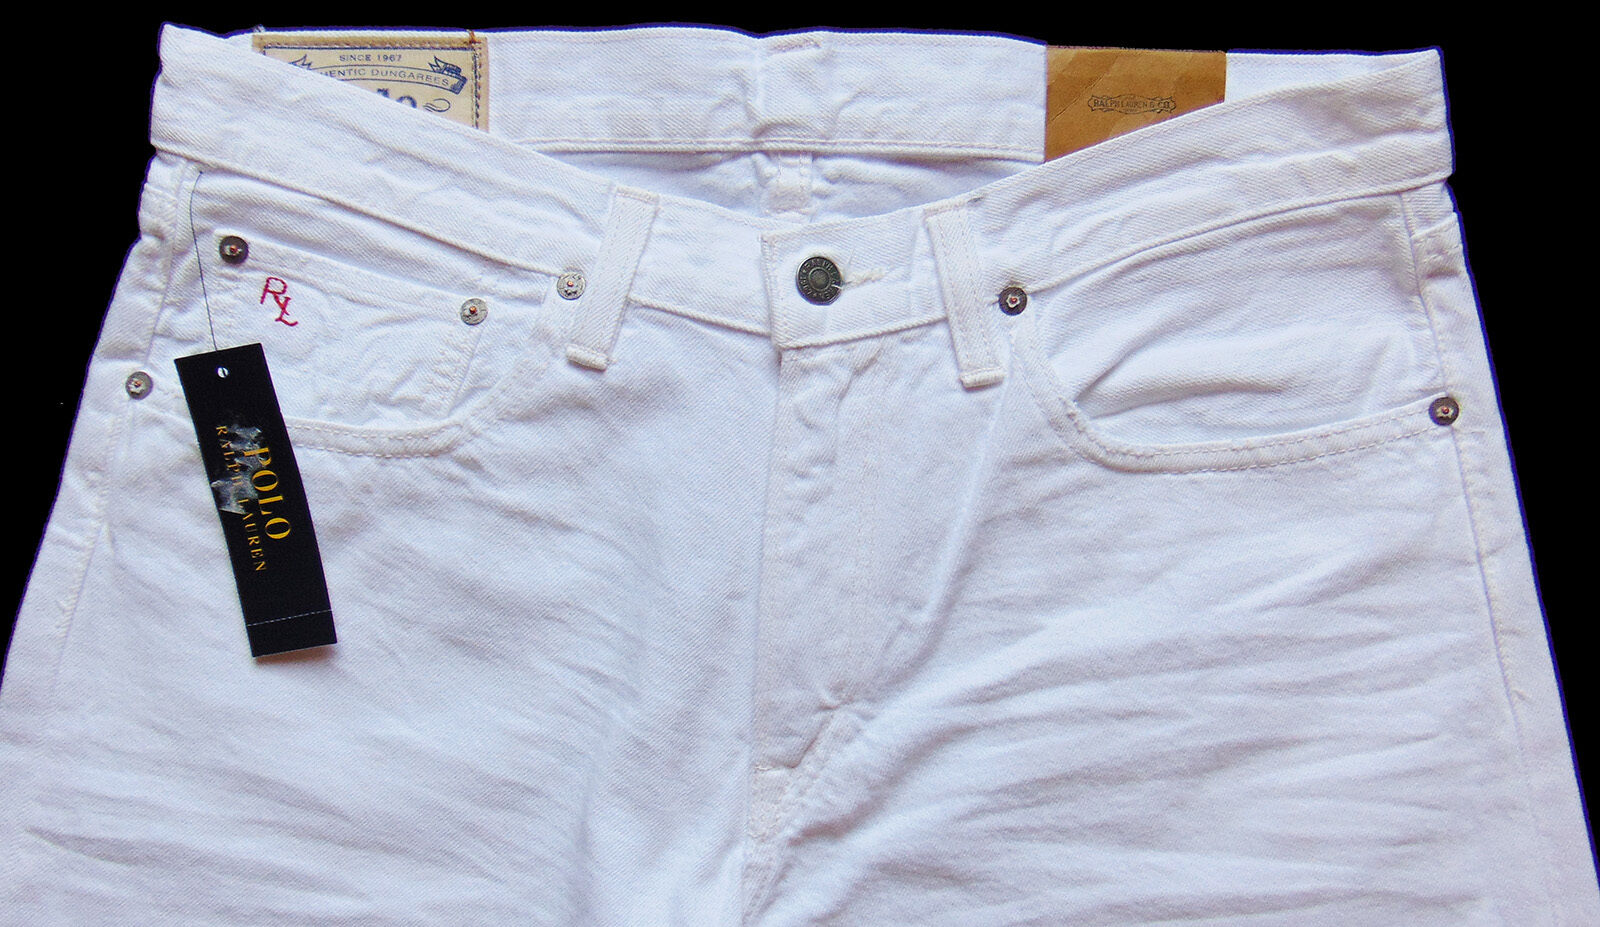 Men's POLO RALPH LAUREN White Denim Jean Pants Tagged 32x30 NWT Hampton Straight